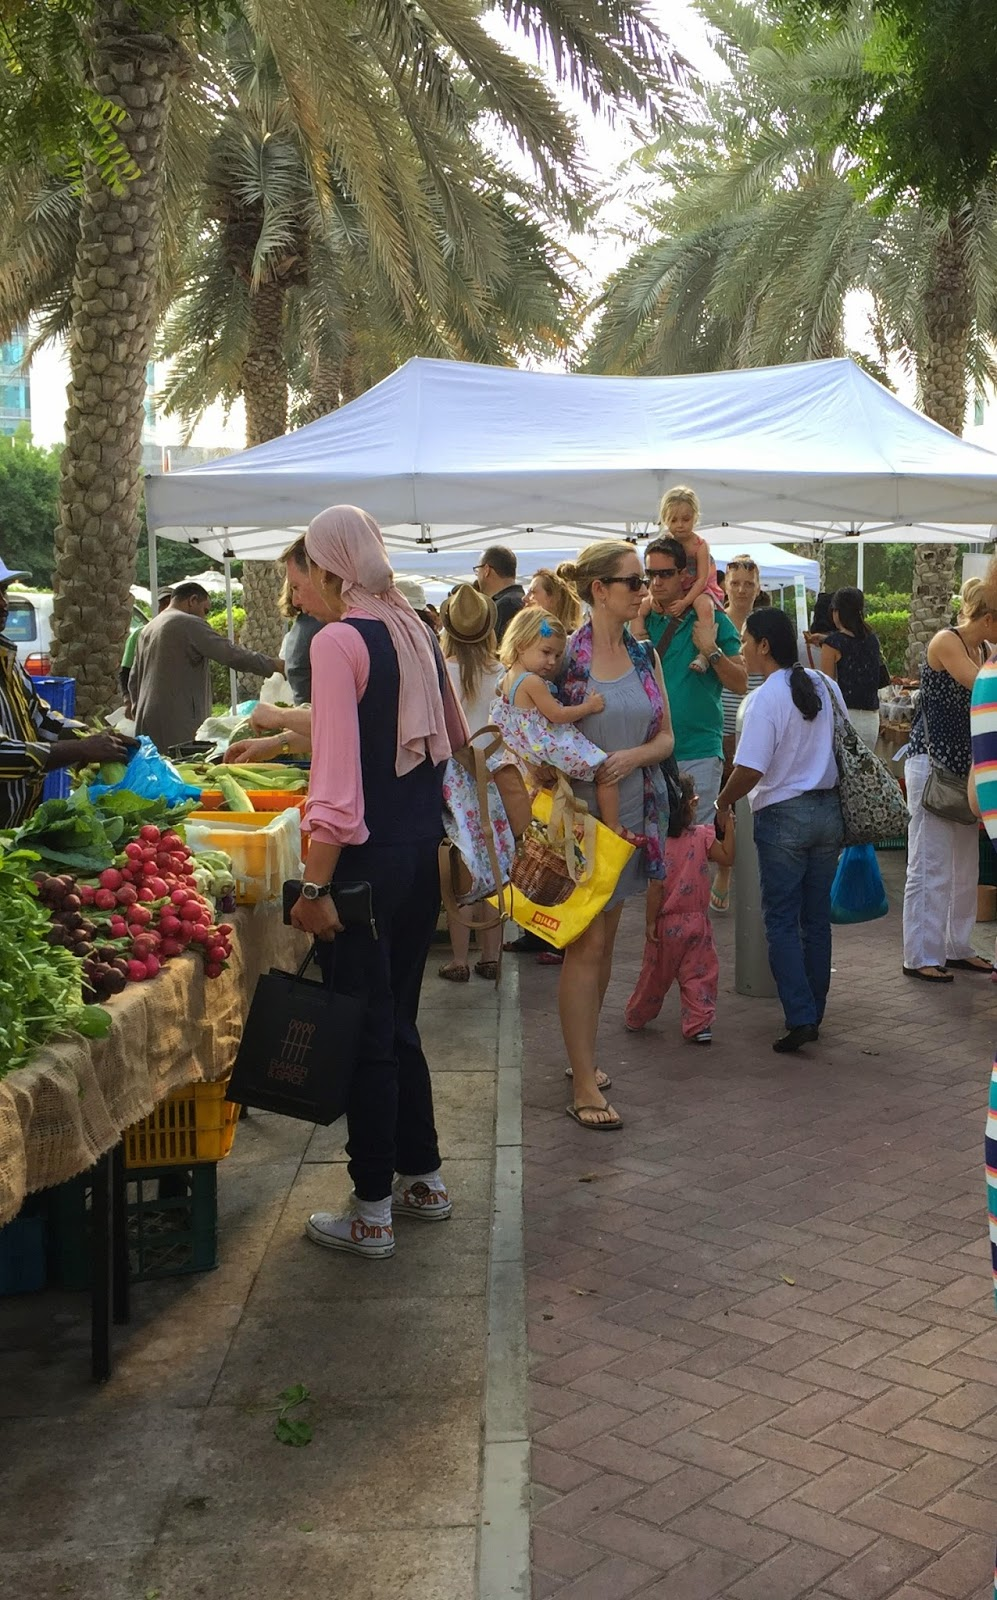 The Farmer's Market on the Terrace in Dubai